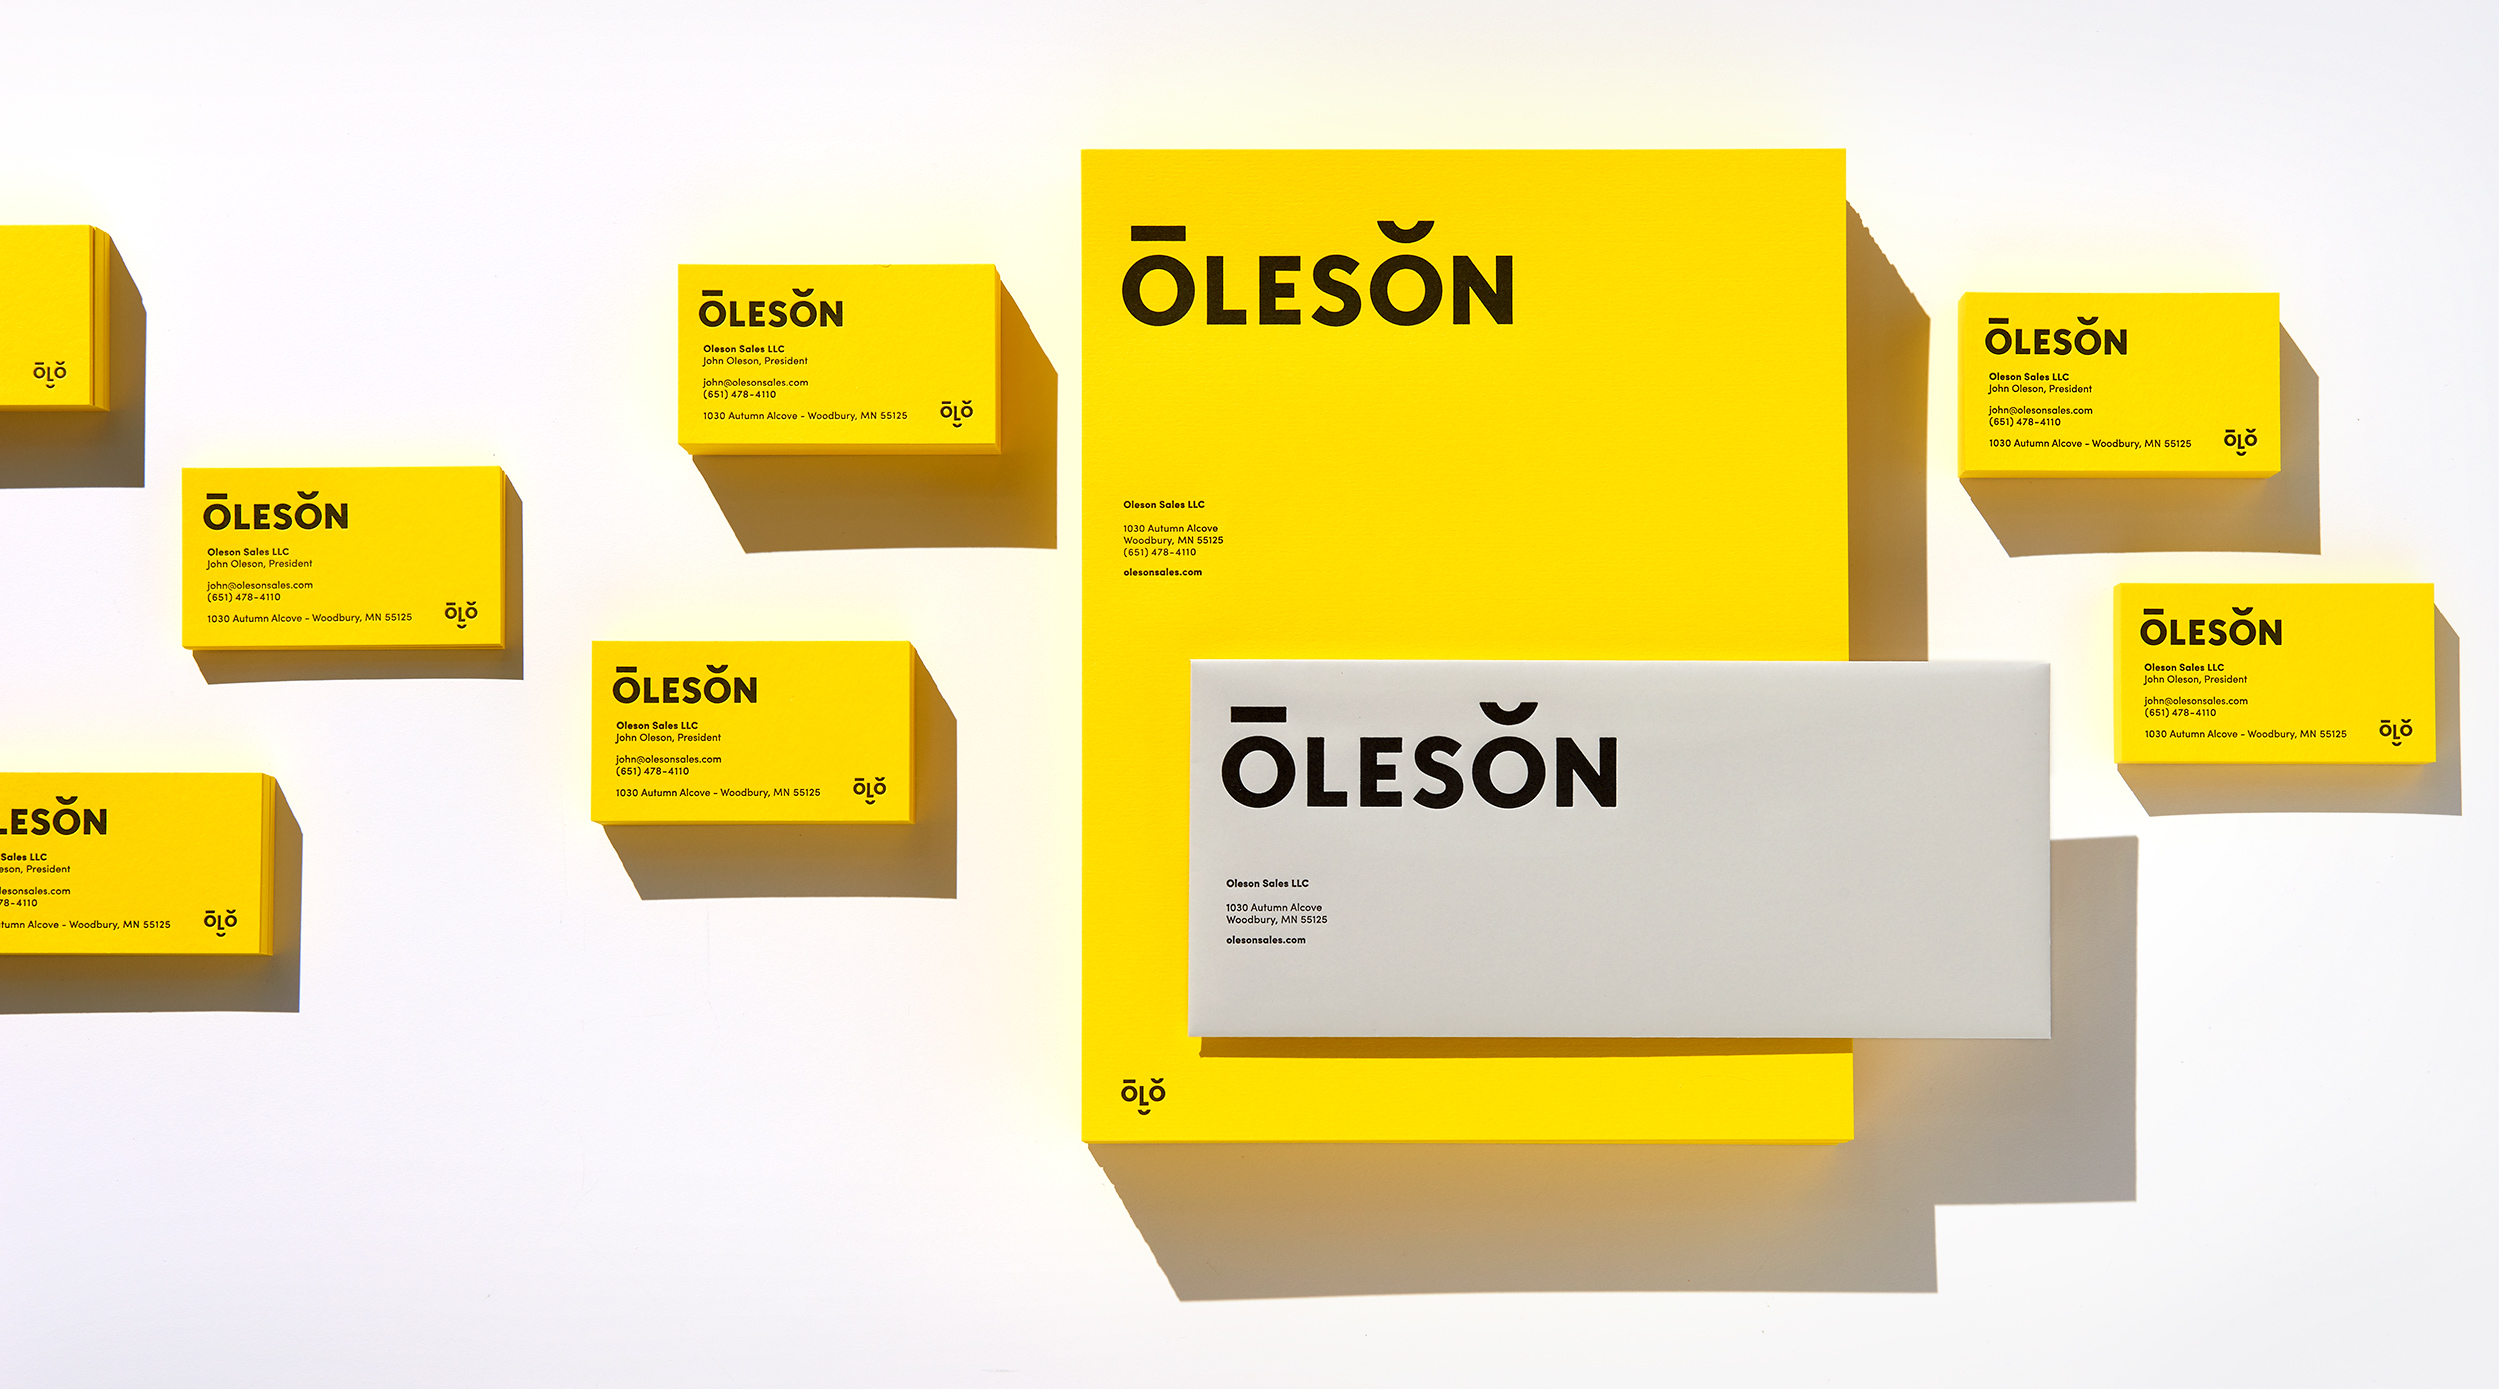 Oleson identity design and stationery. Designed by Abby Haddican at Werner Design Werks.